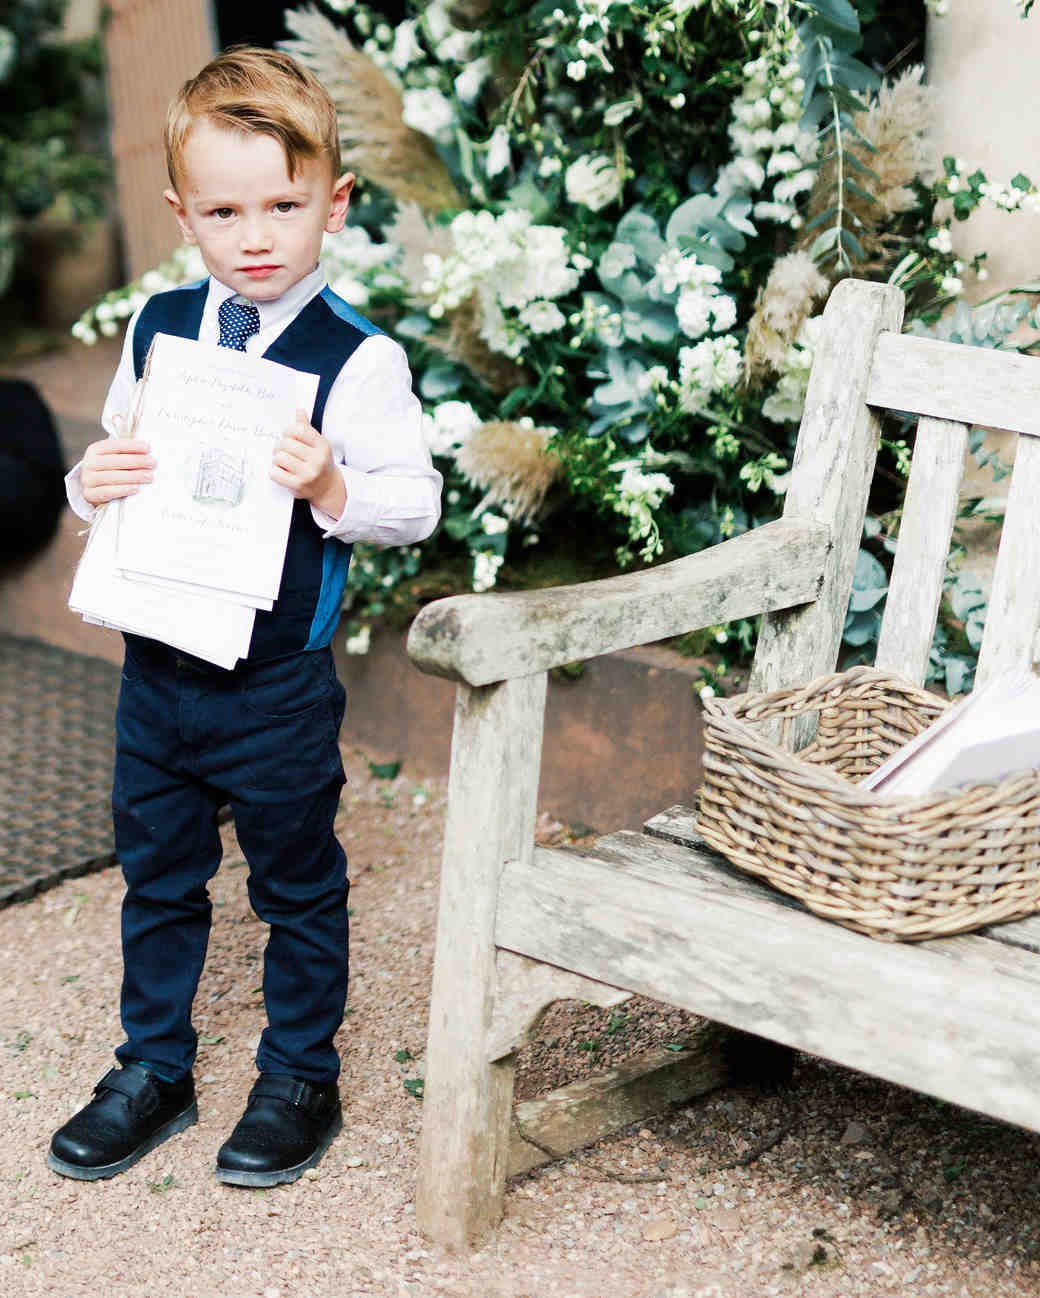 sophie christopher wedding programs and little boy